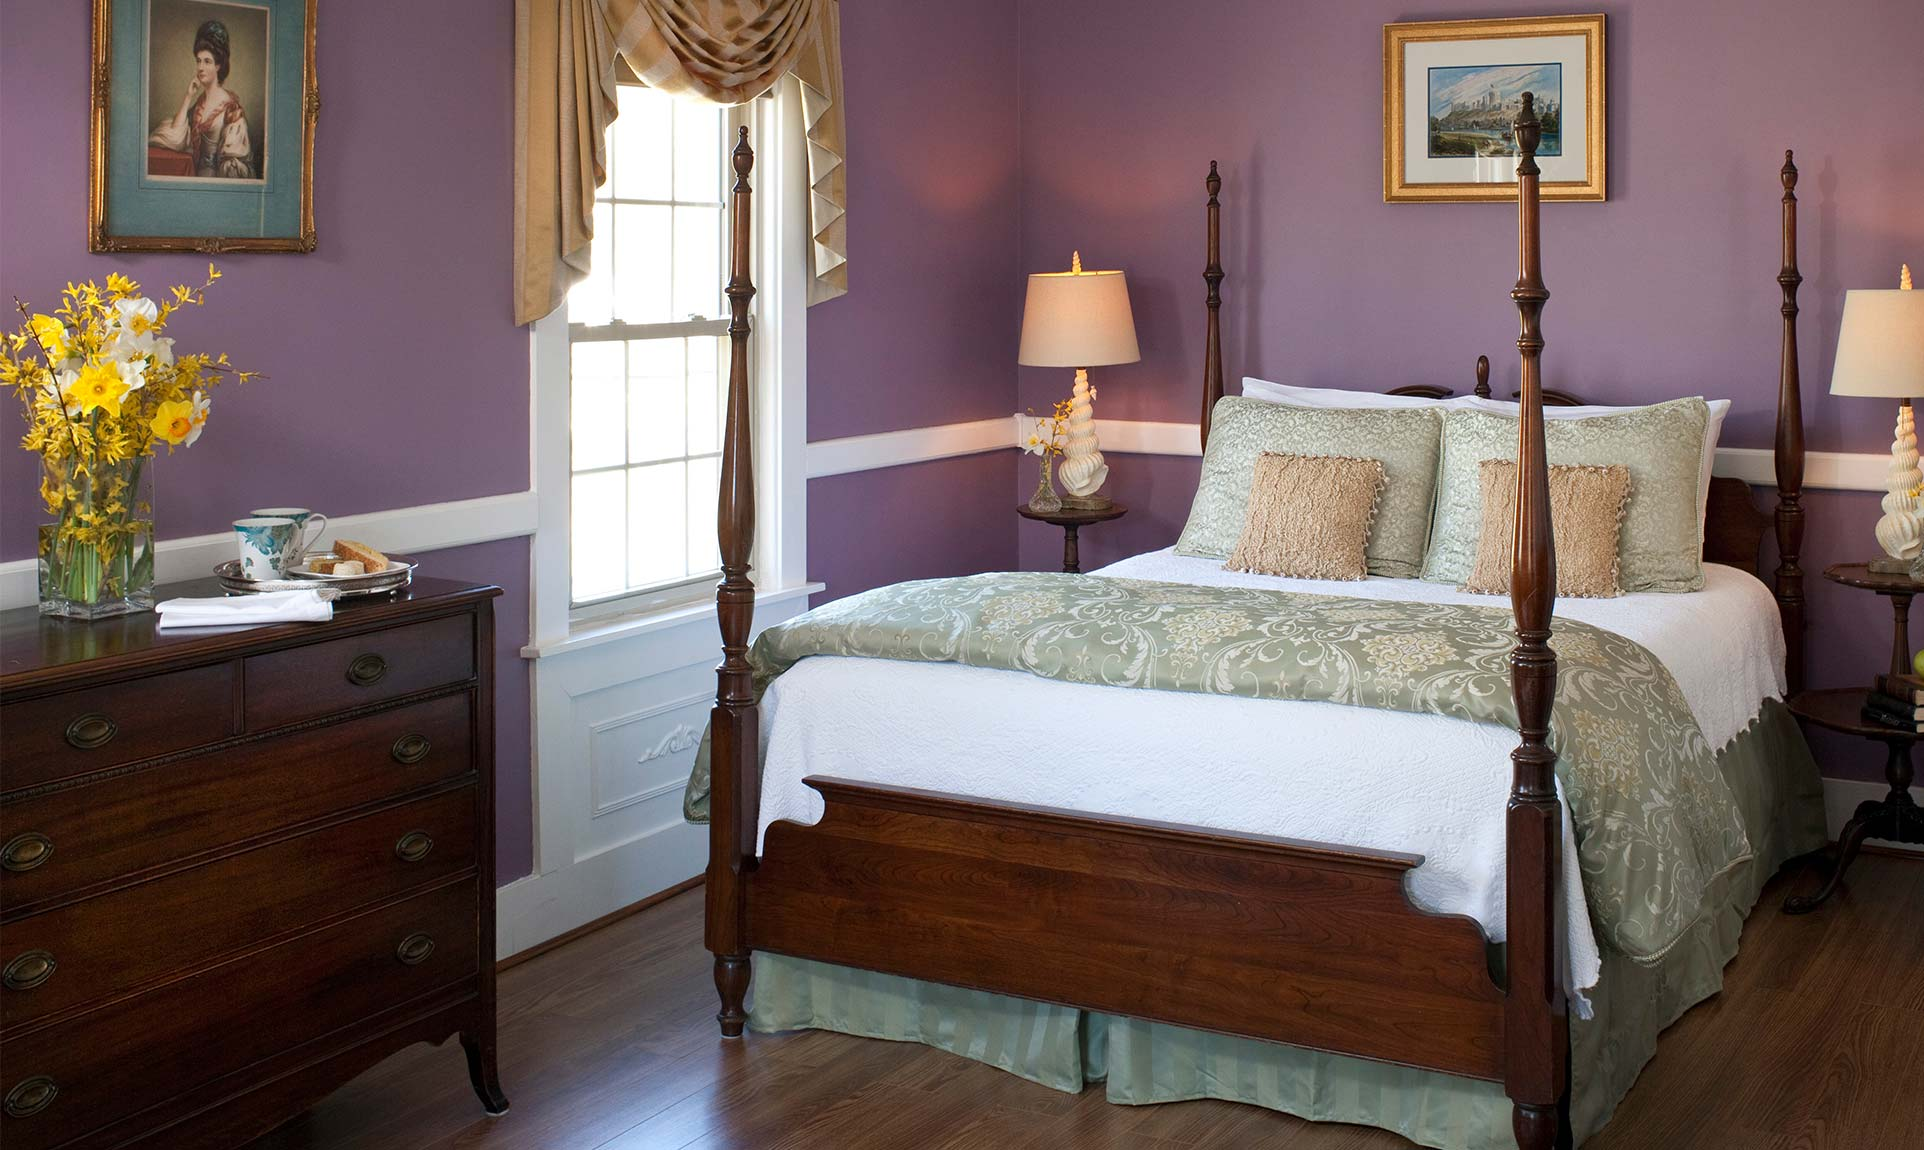 Four poster queen bed in a spacious room with lavender walls